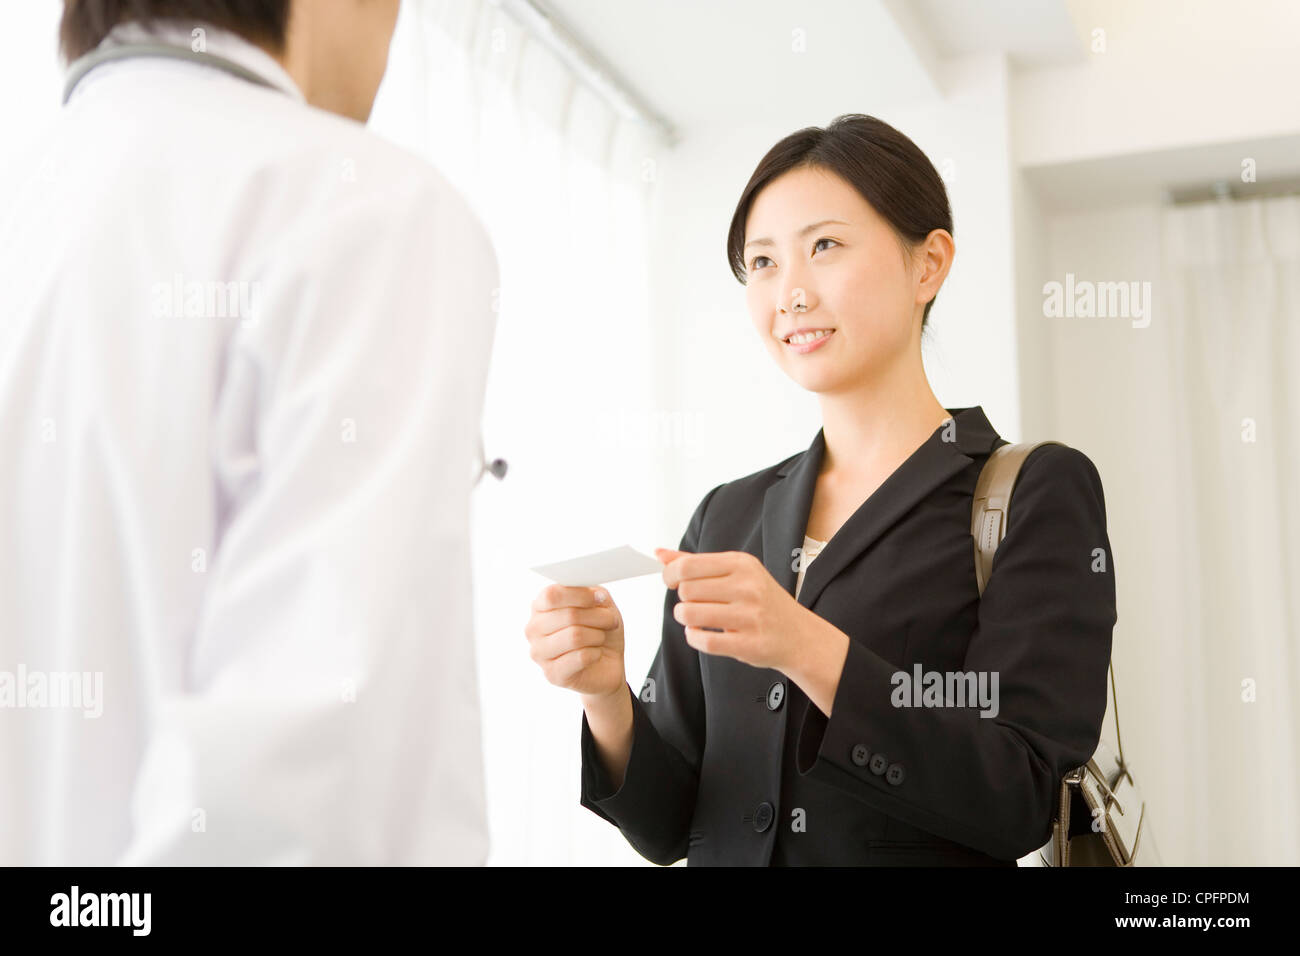 Pharmaceutical Sales Representative Stock Photos & Pharmaceutical ...